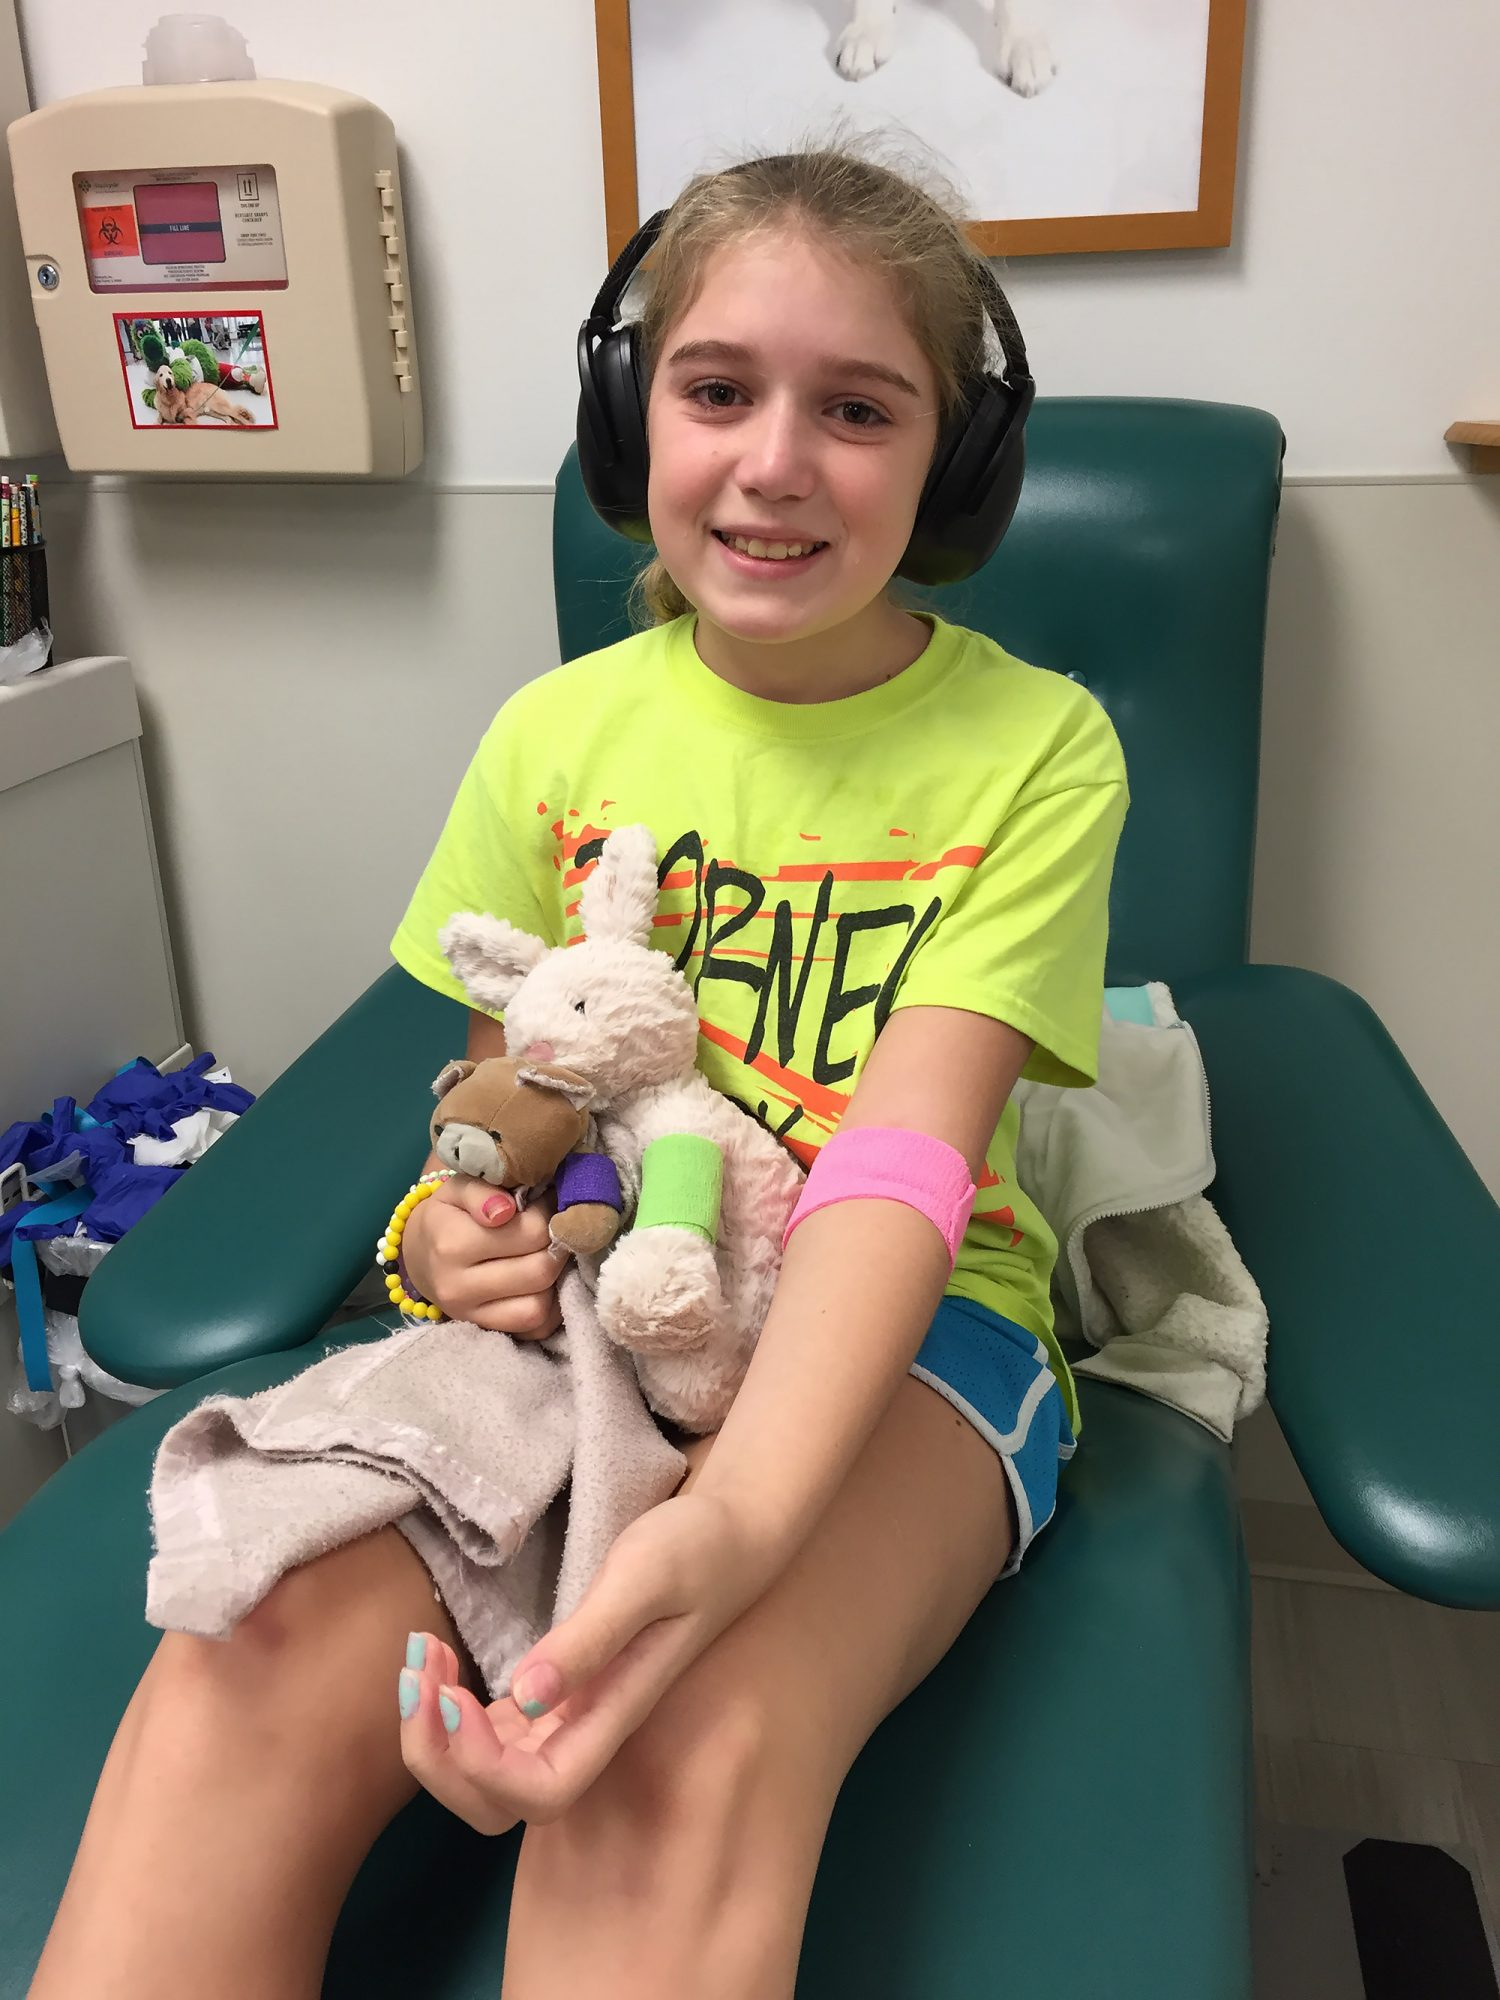 14-Year-Old Girl Blasted with Air Horn Speaks Out: 'I Feel Like I'm Being Stabbed in the Ear'